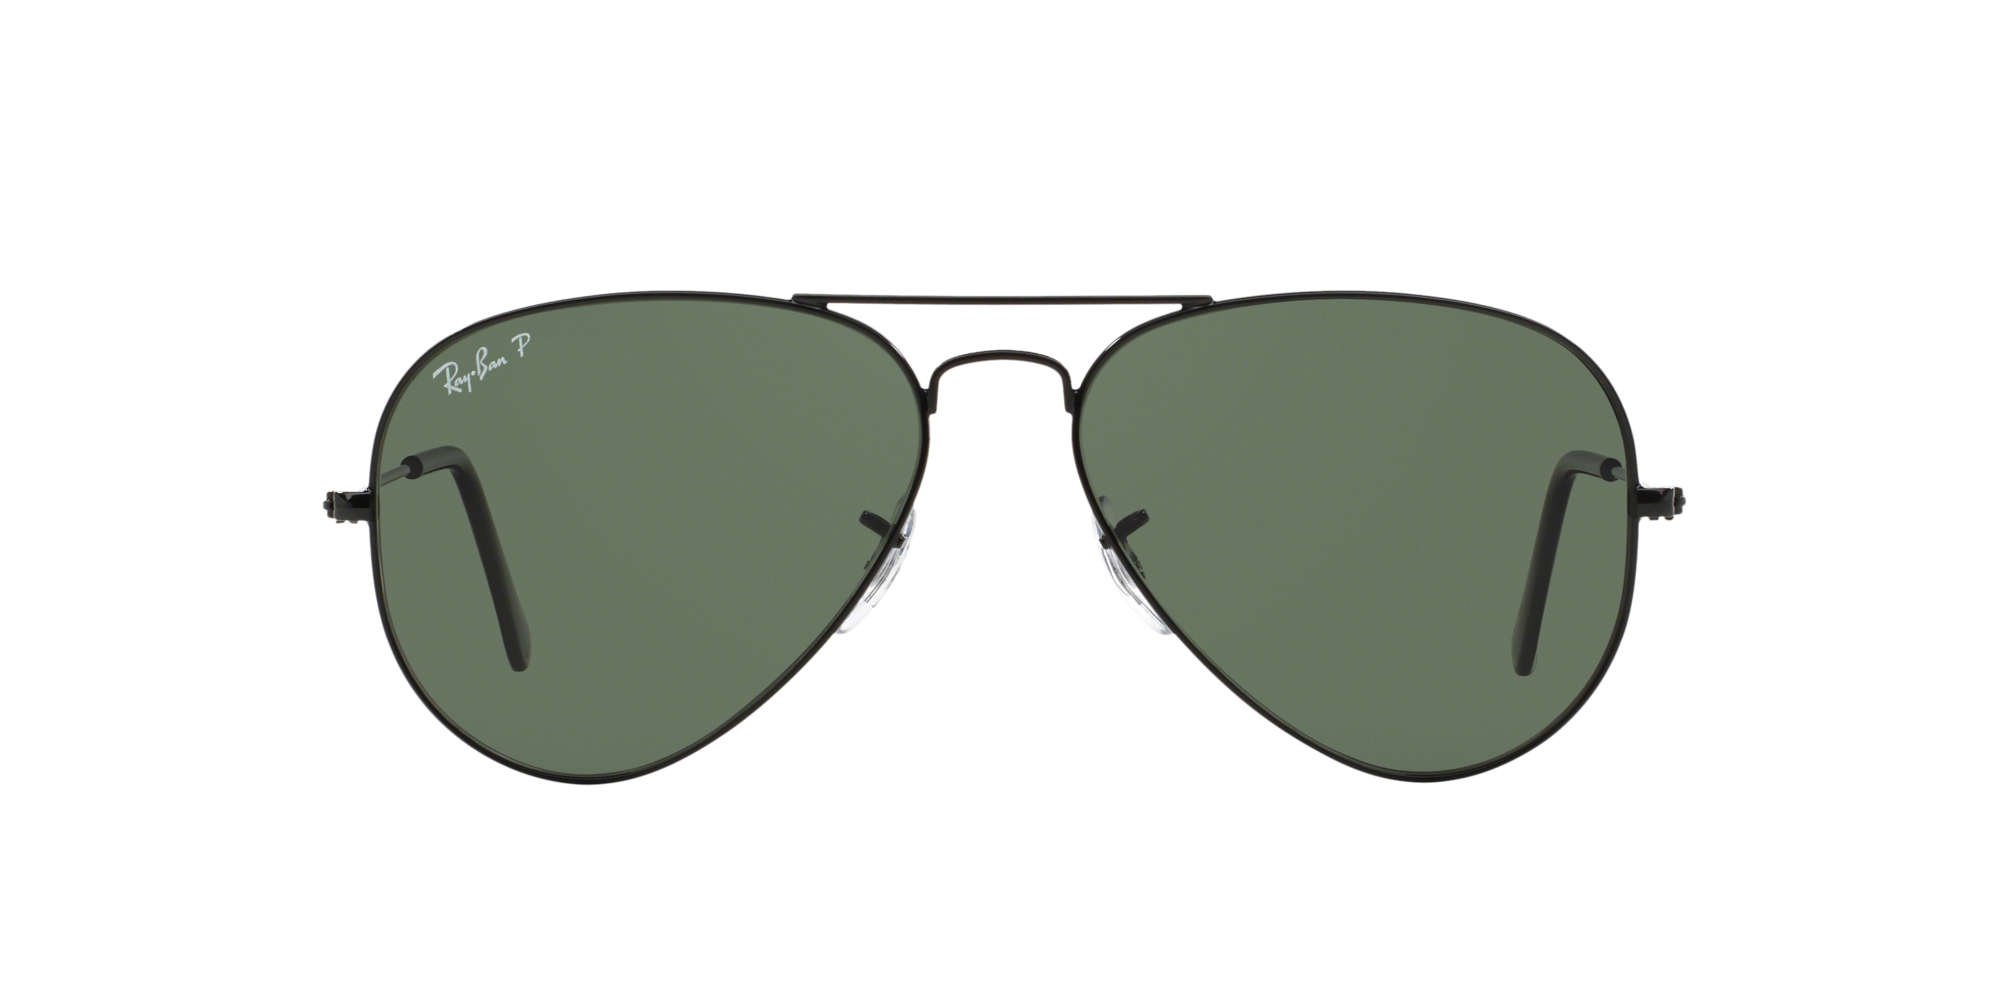 RAY-BAN AVIATOR CLASSIC RB 3025 002/58  POLARIZADA-360